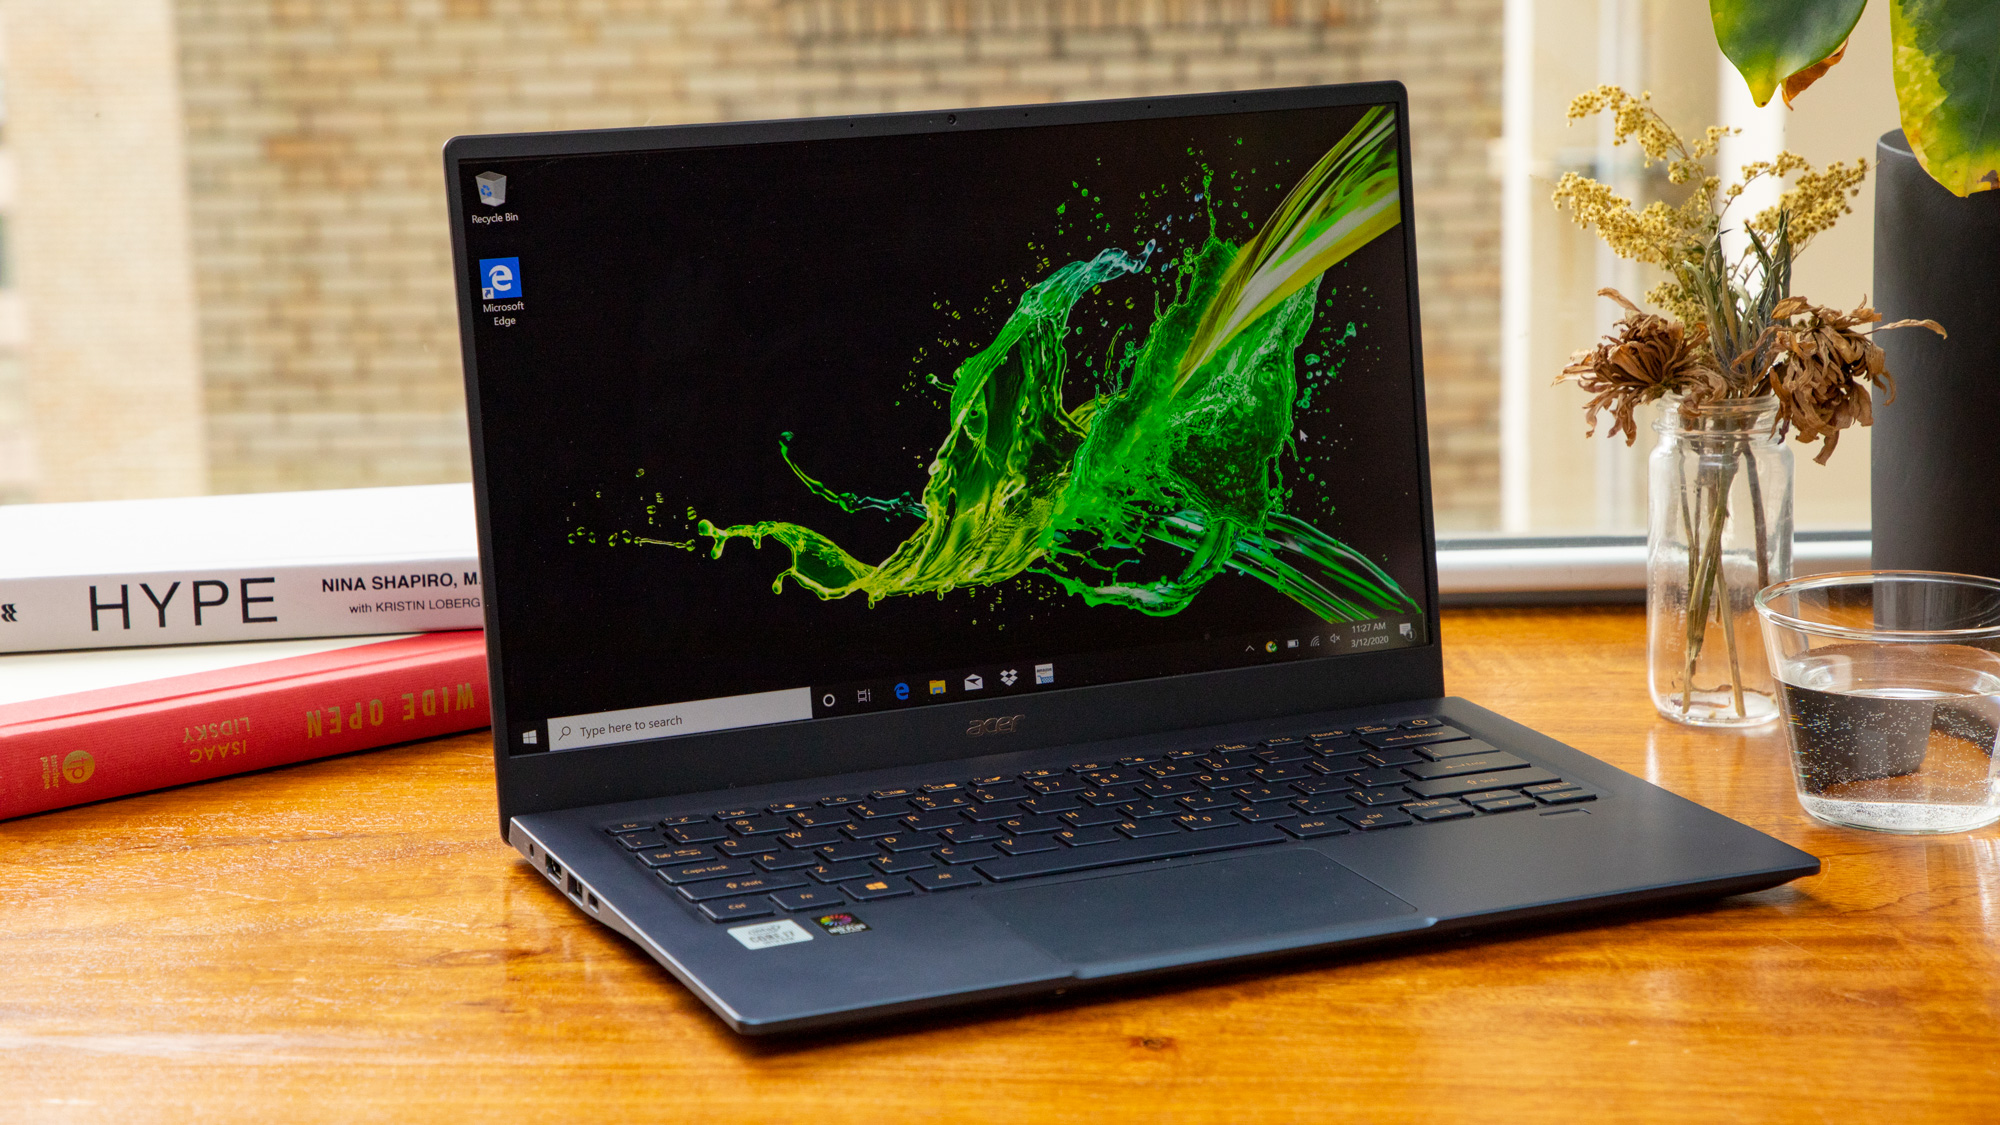 Acer Swift 5 , Acer Swift 5 Cam ,Acer Swift 5 Camera test,Acer Swift 5 Screen Repair, Acer Swift 5 Camera, Acer Swift 5 Unboxing, Acer Swift 5 Hands-on